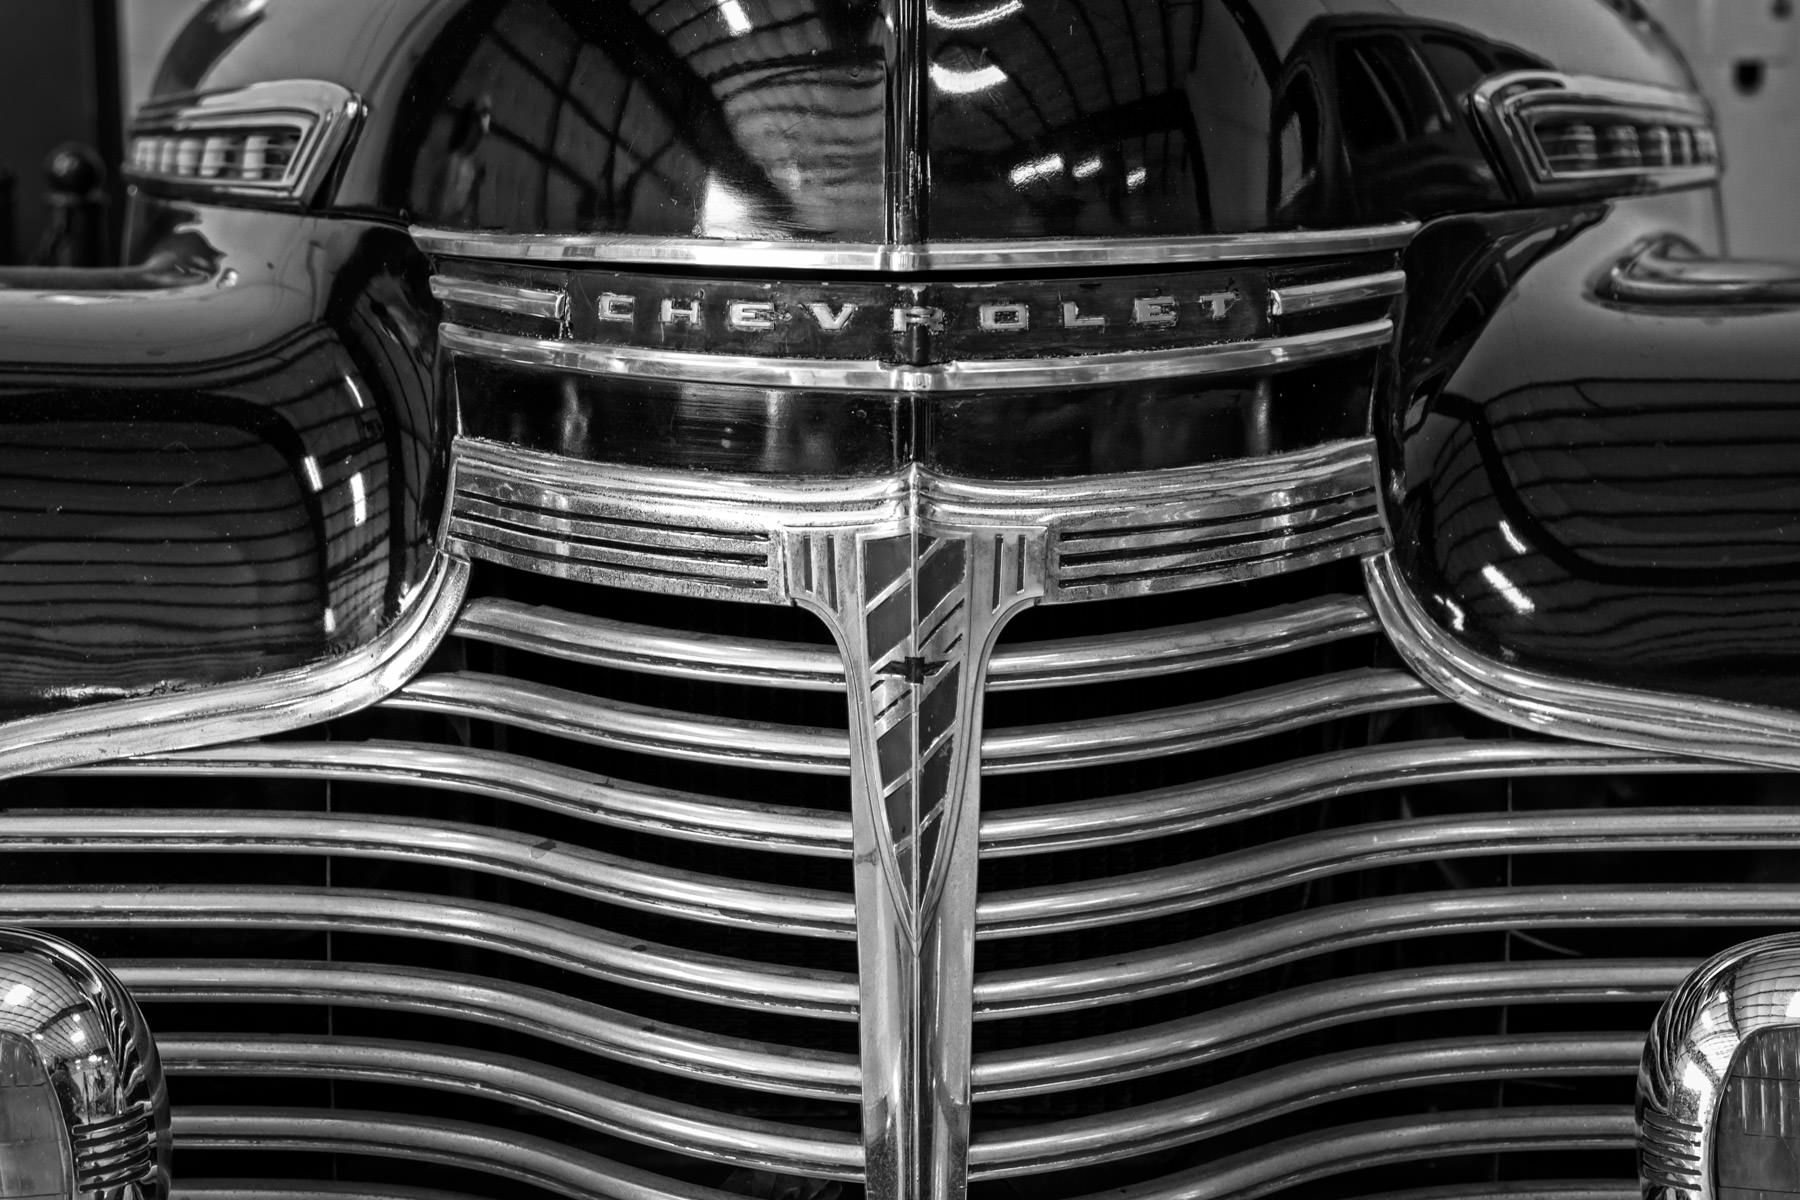 Detail of a classic Chevrolet found at Addison, Texas' Cavanaugh Flight Museum.